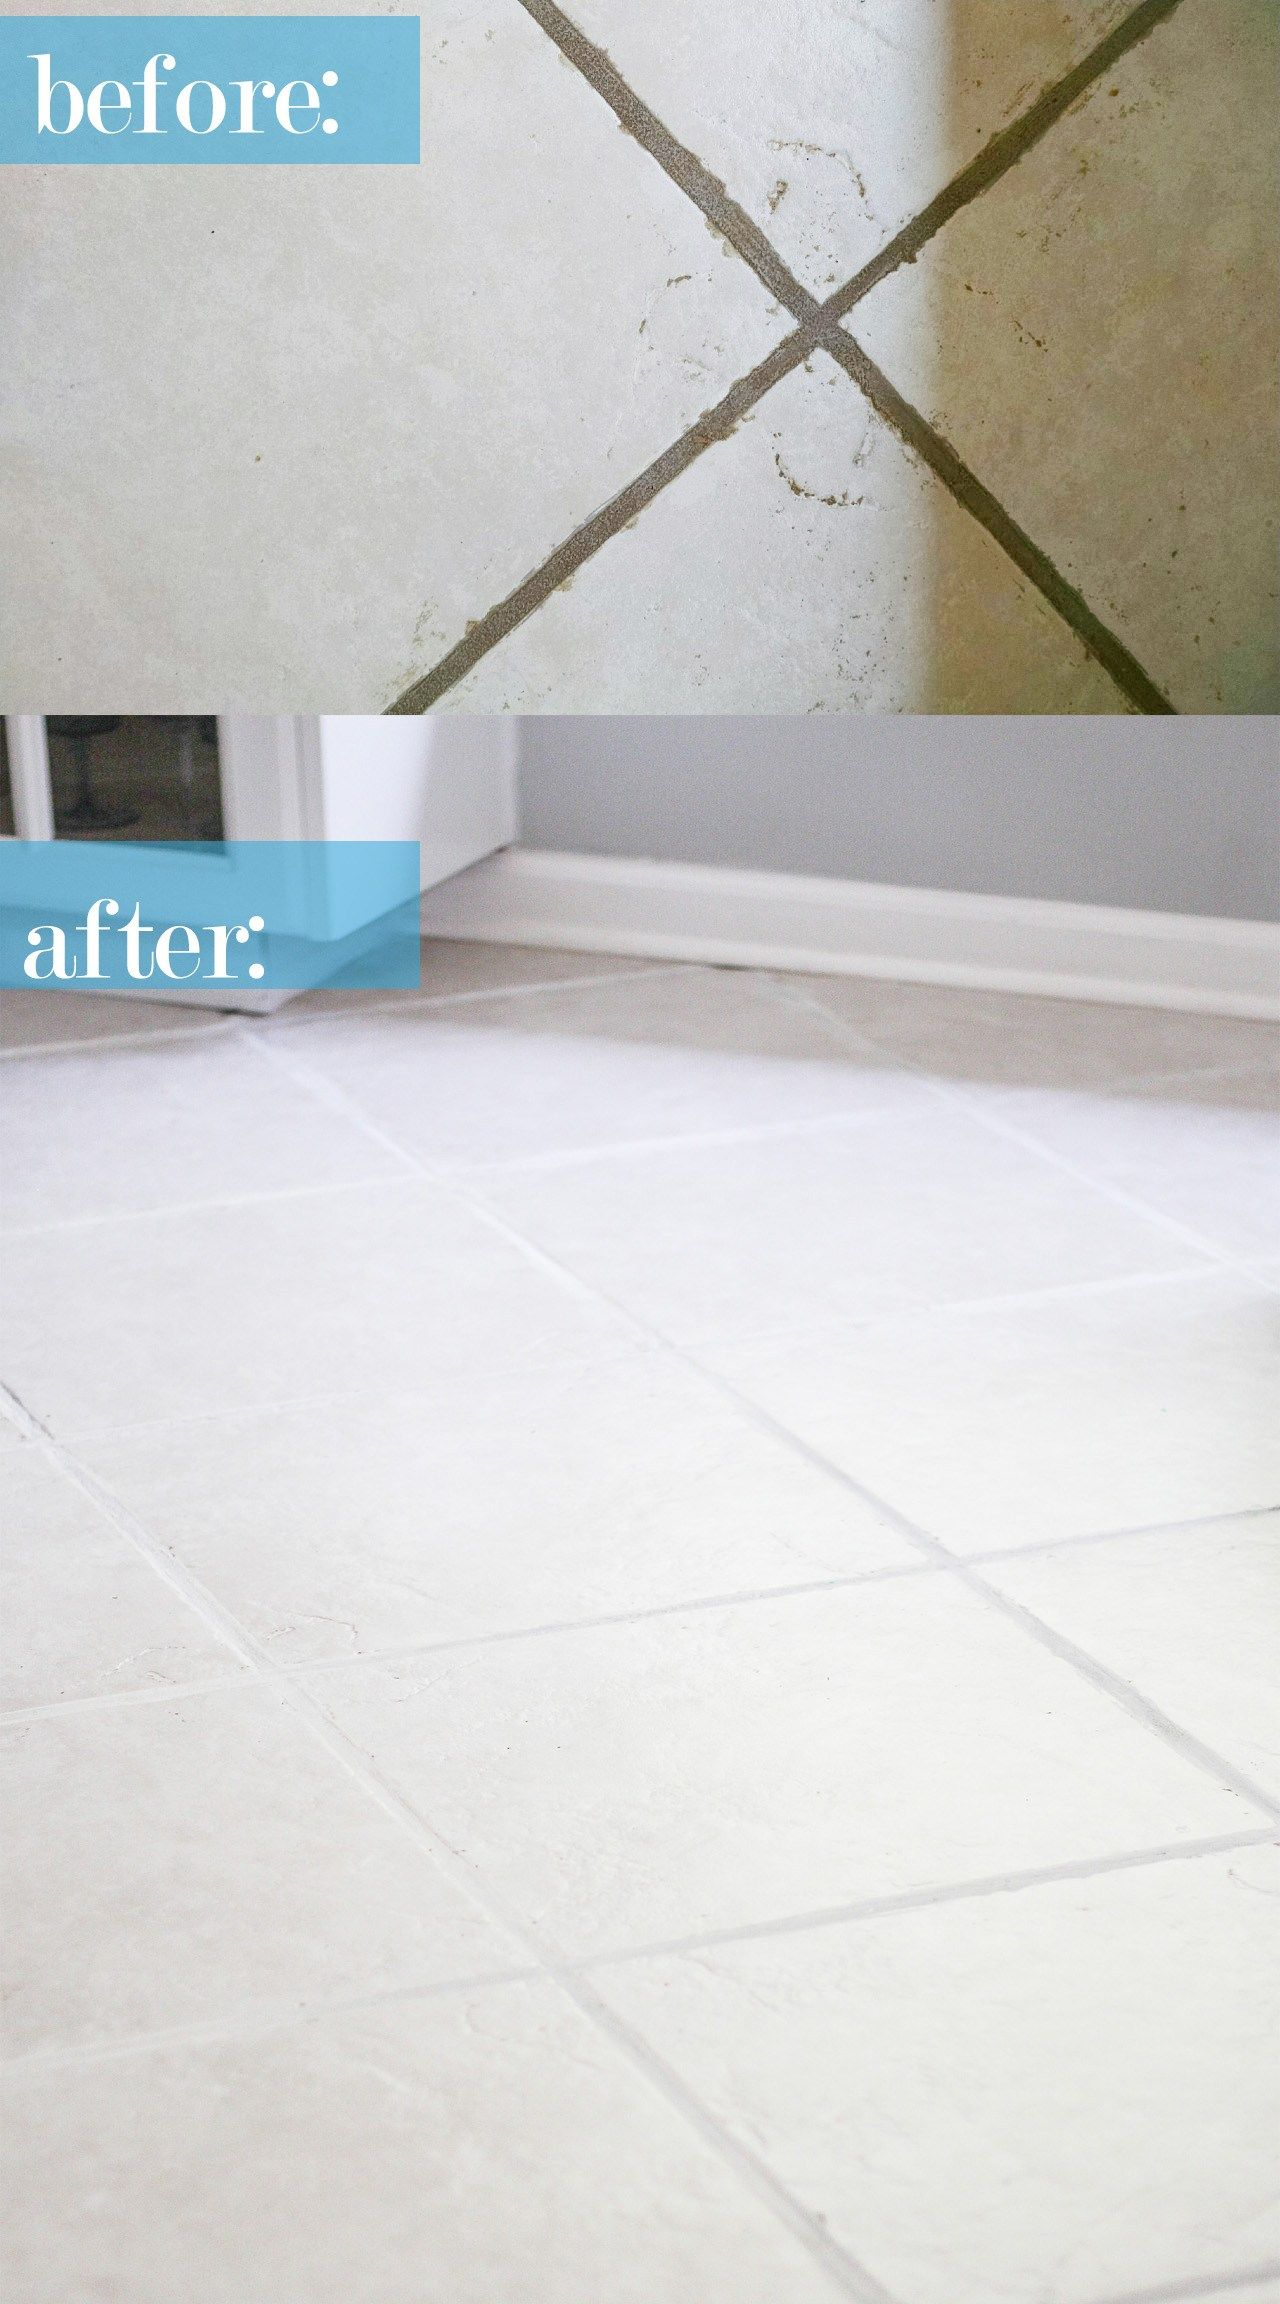 what to use to clean ceramic floor tiles